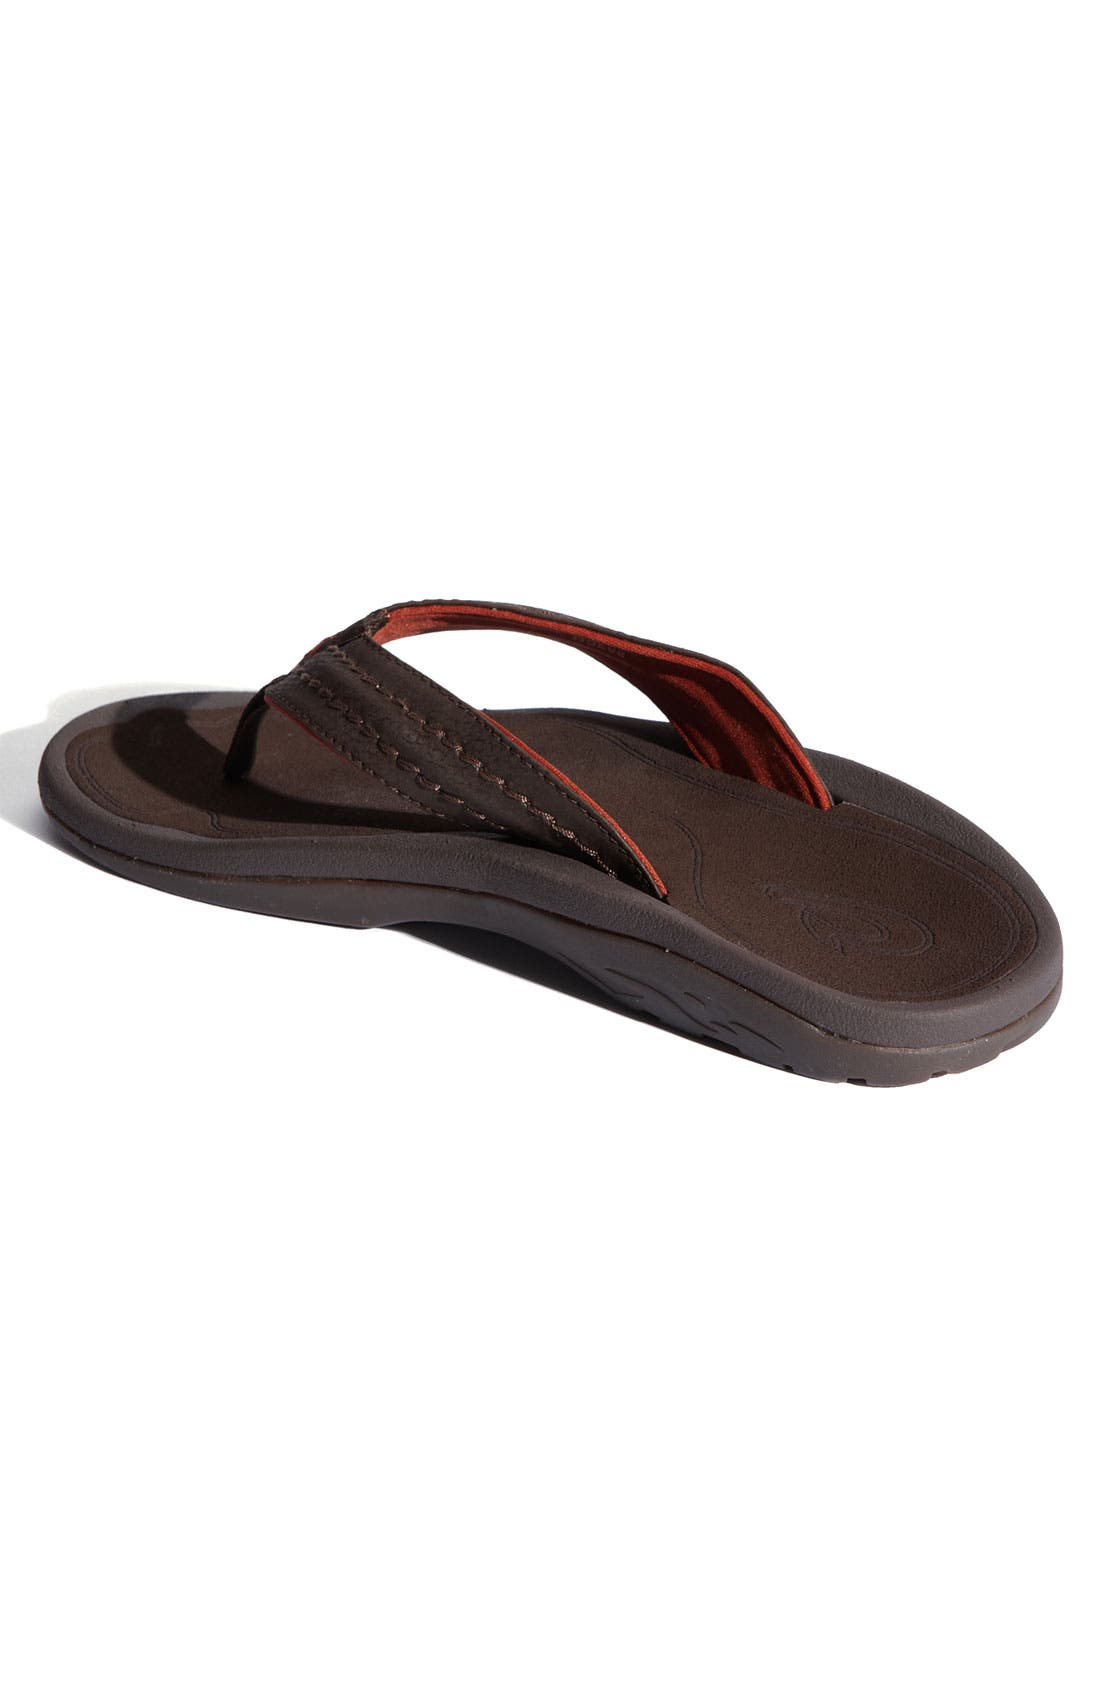 Hokua Flip Flop,                             Alternate thumbnail 2, color,                             Dark Java Faux Leather